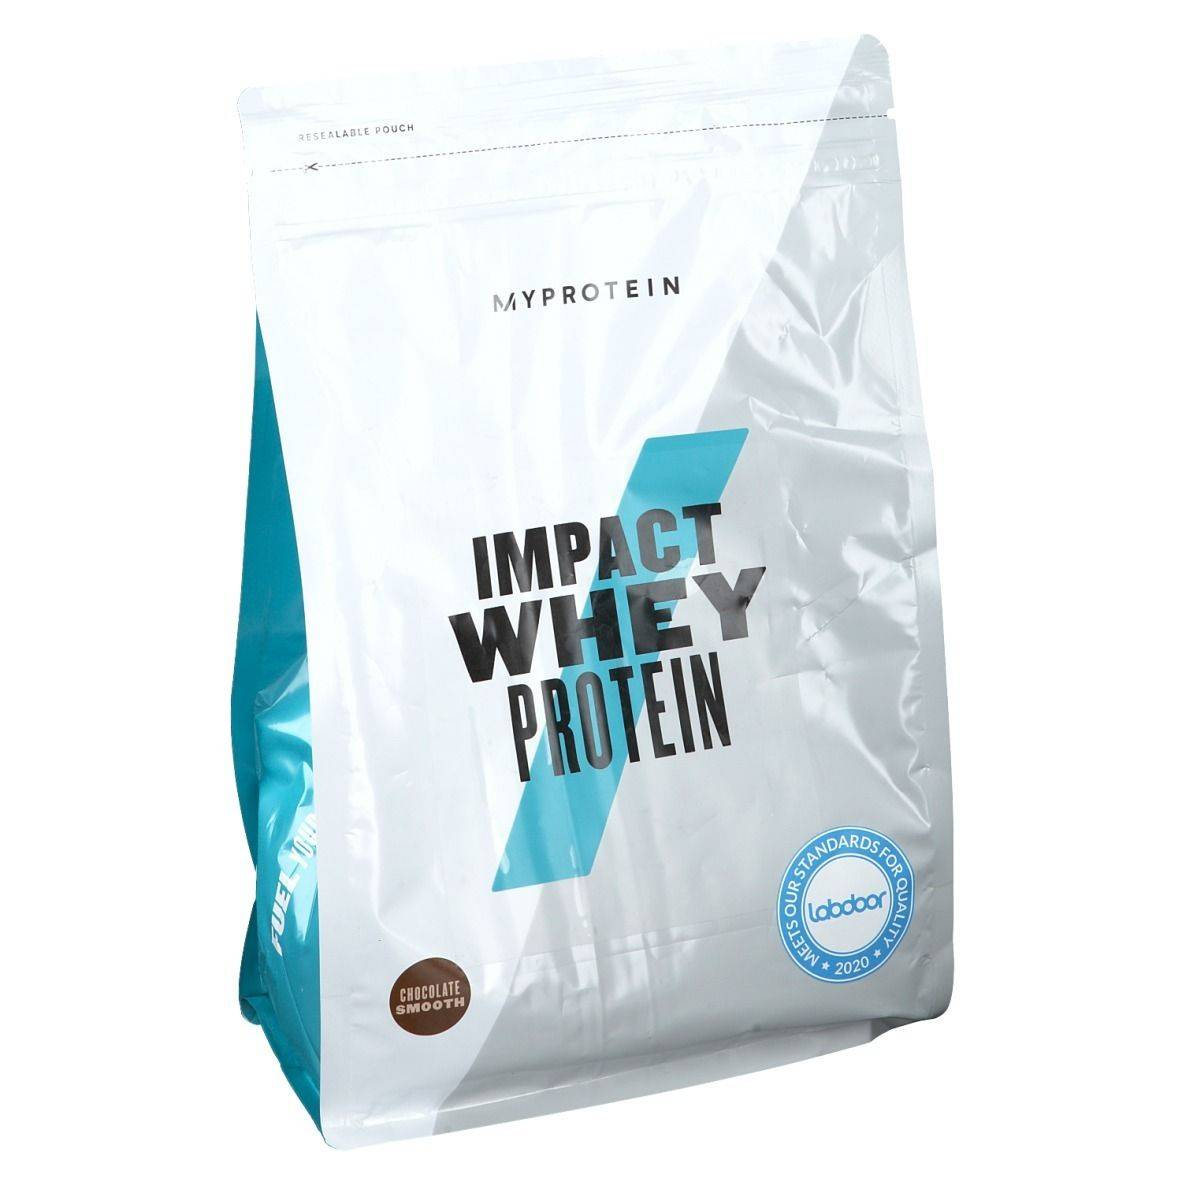 MyProtein® Impact Whey Protein chocolat onctueux g poudre